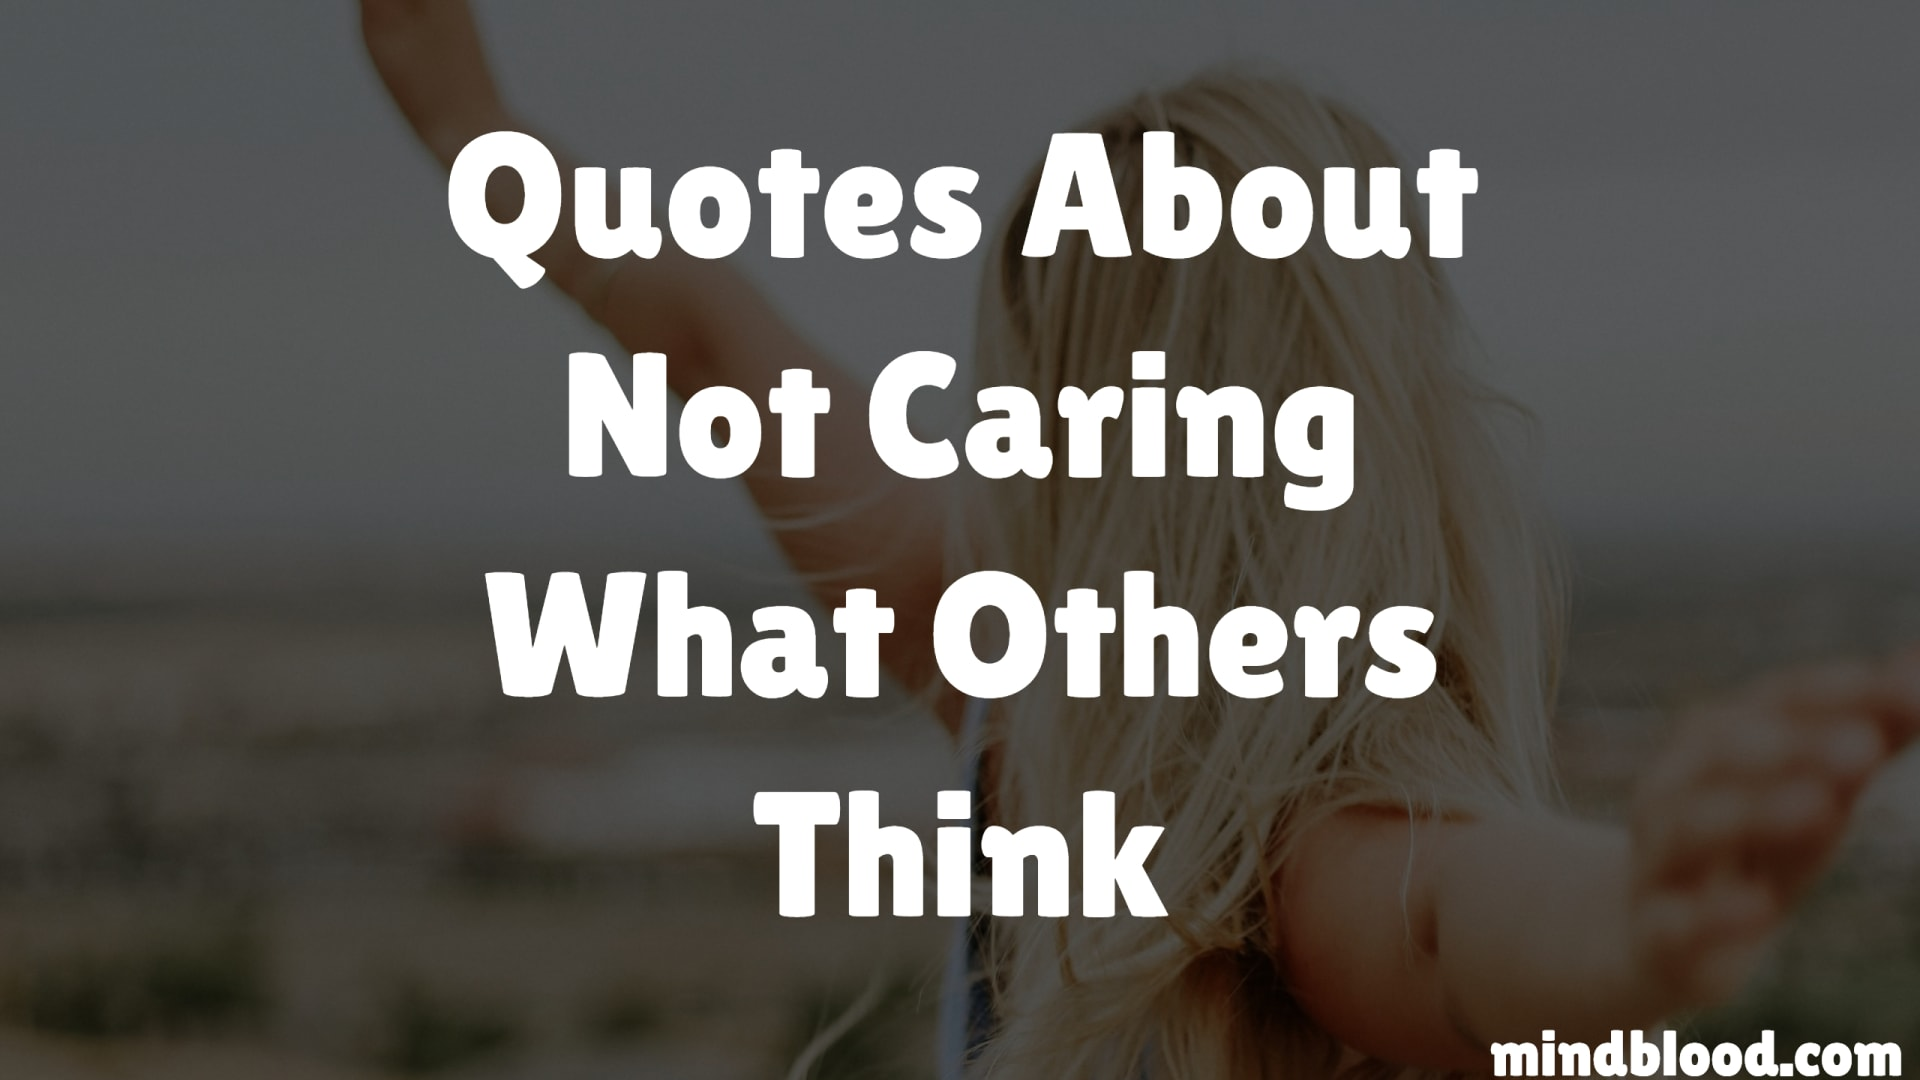 Quotes About Not Caring What Others Think.